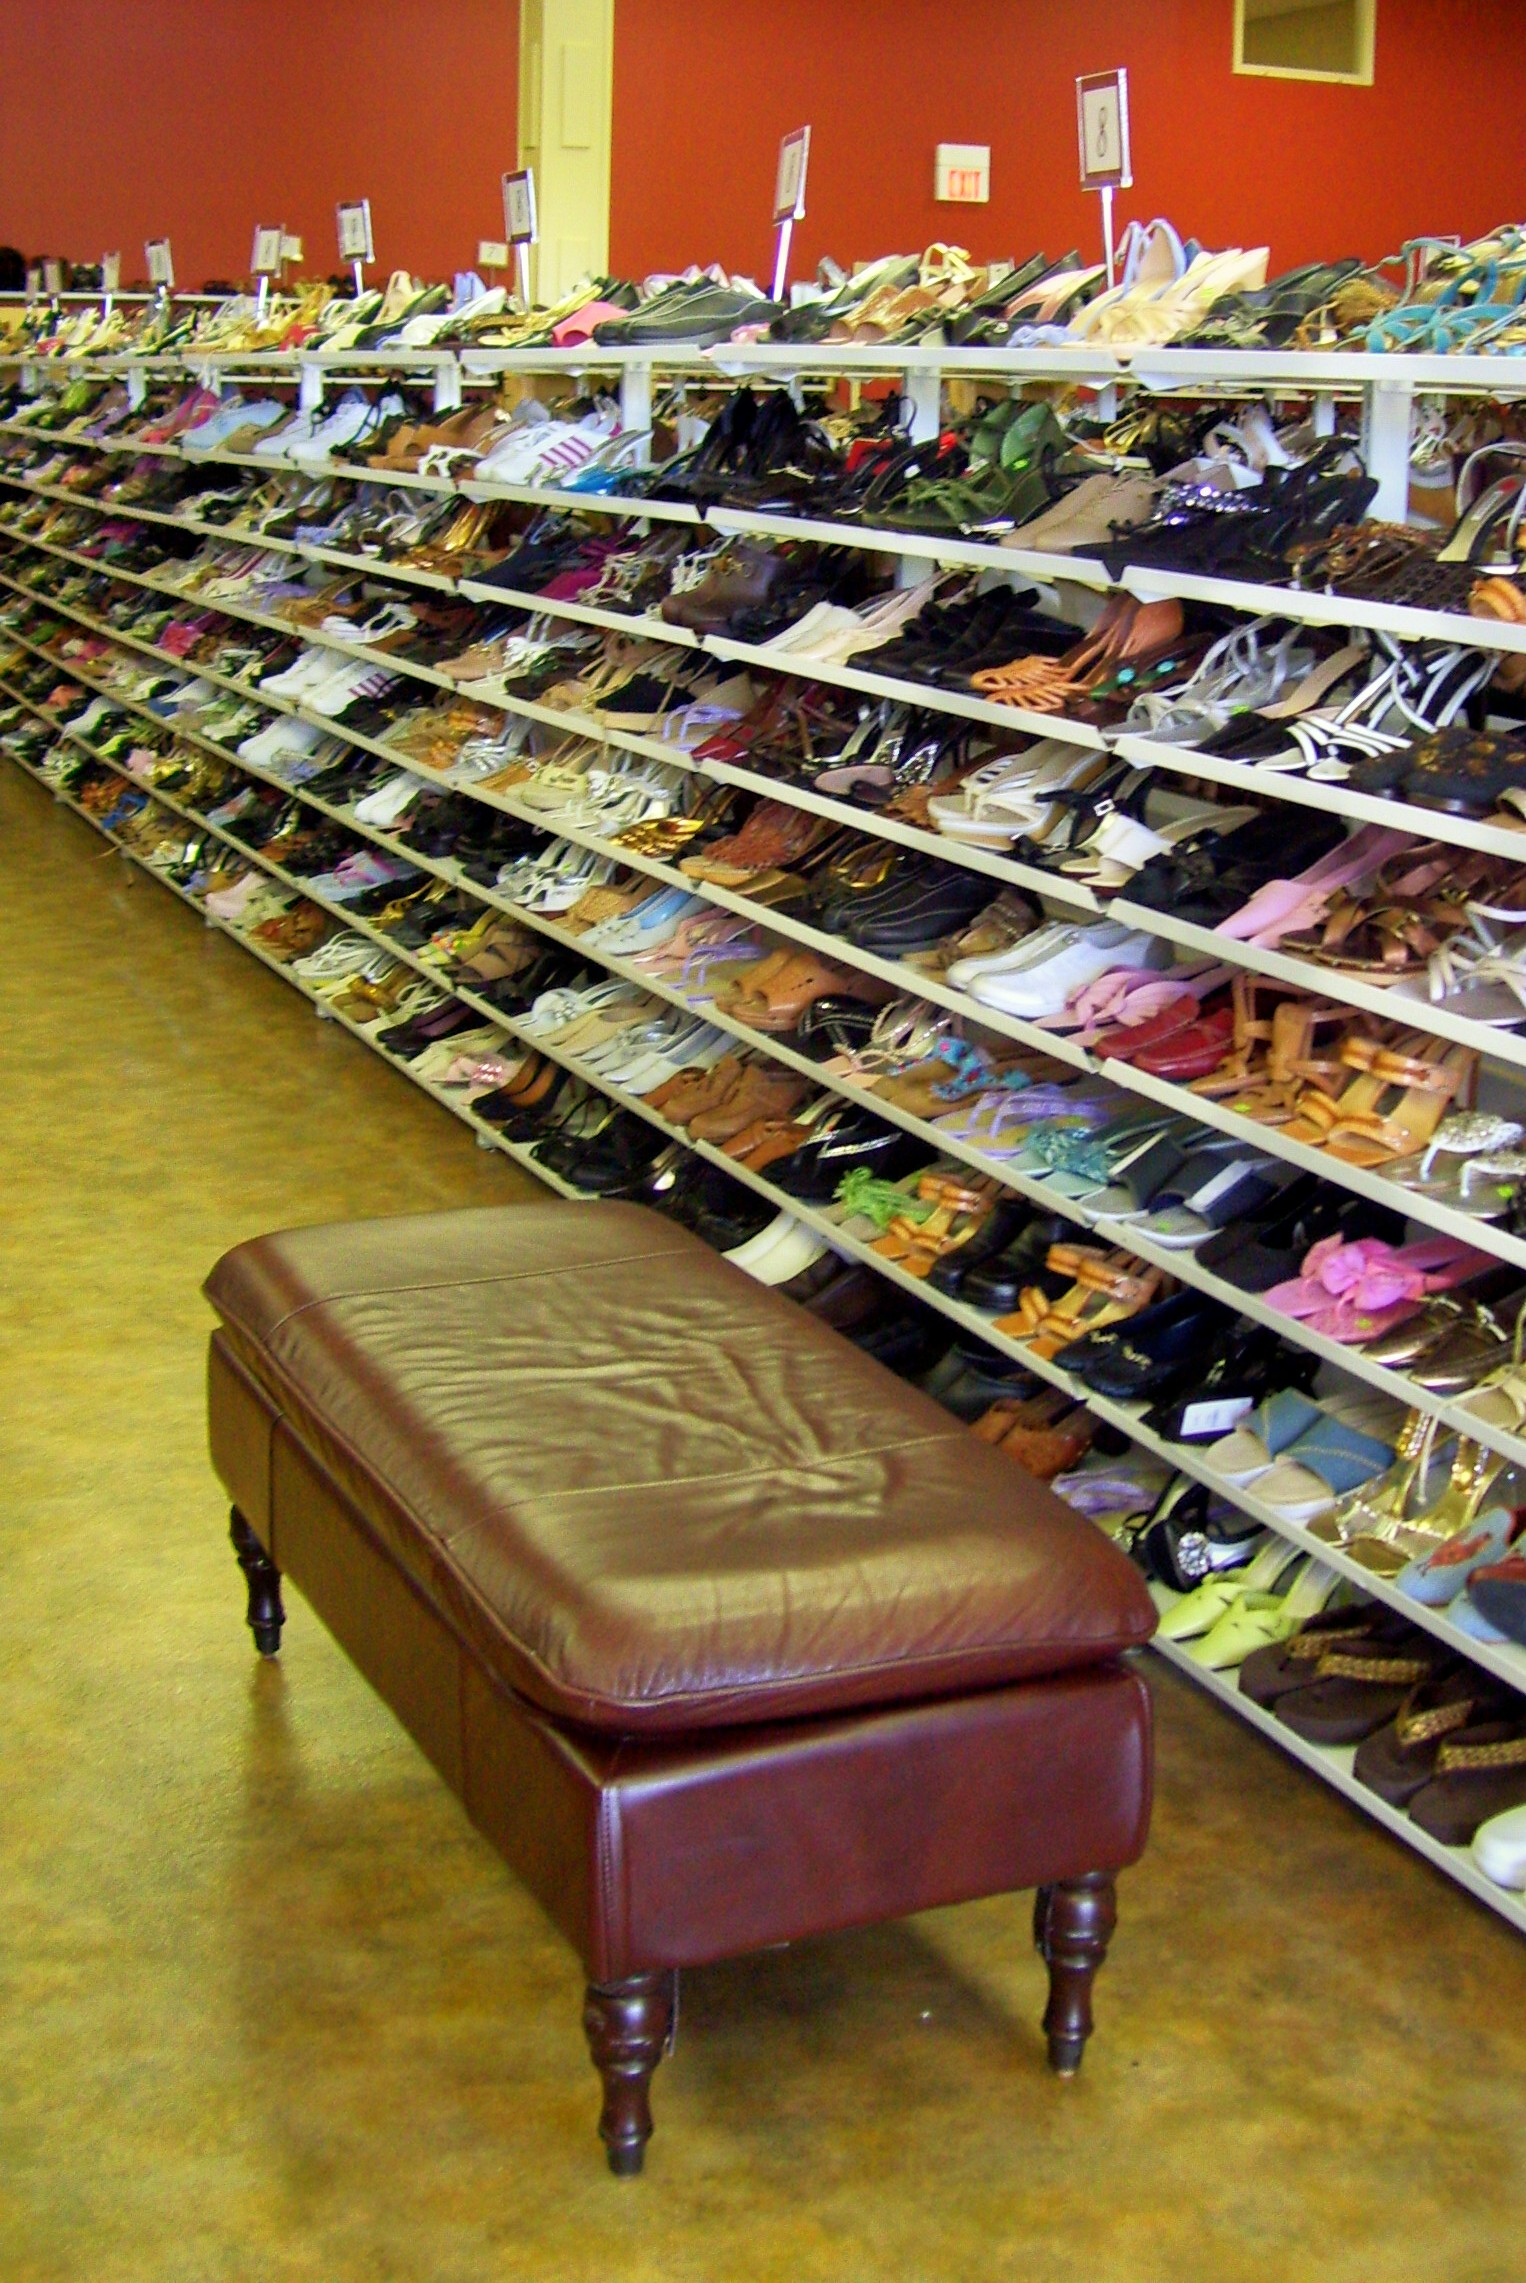 Shoe Stores Shoes From Wht 90s For Women For Men For Girls Size Chart